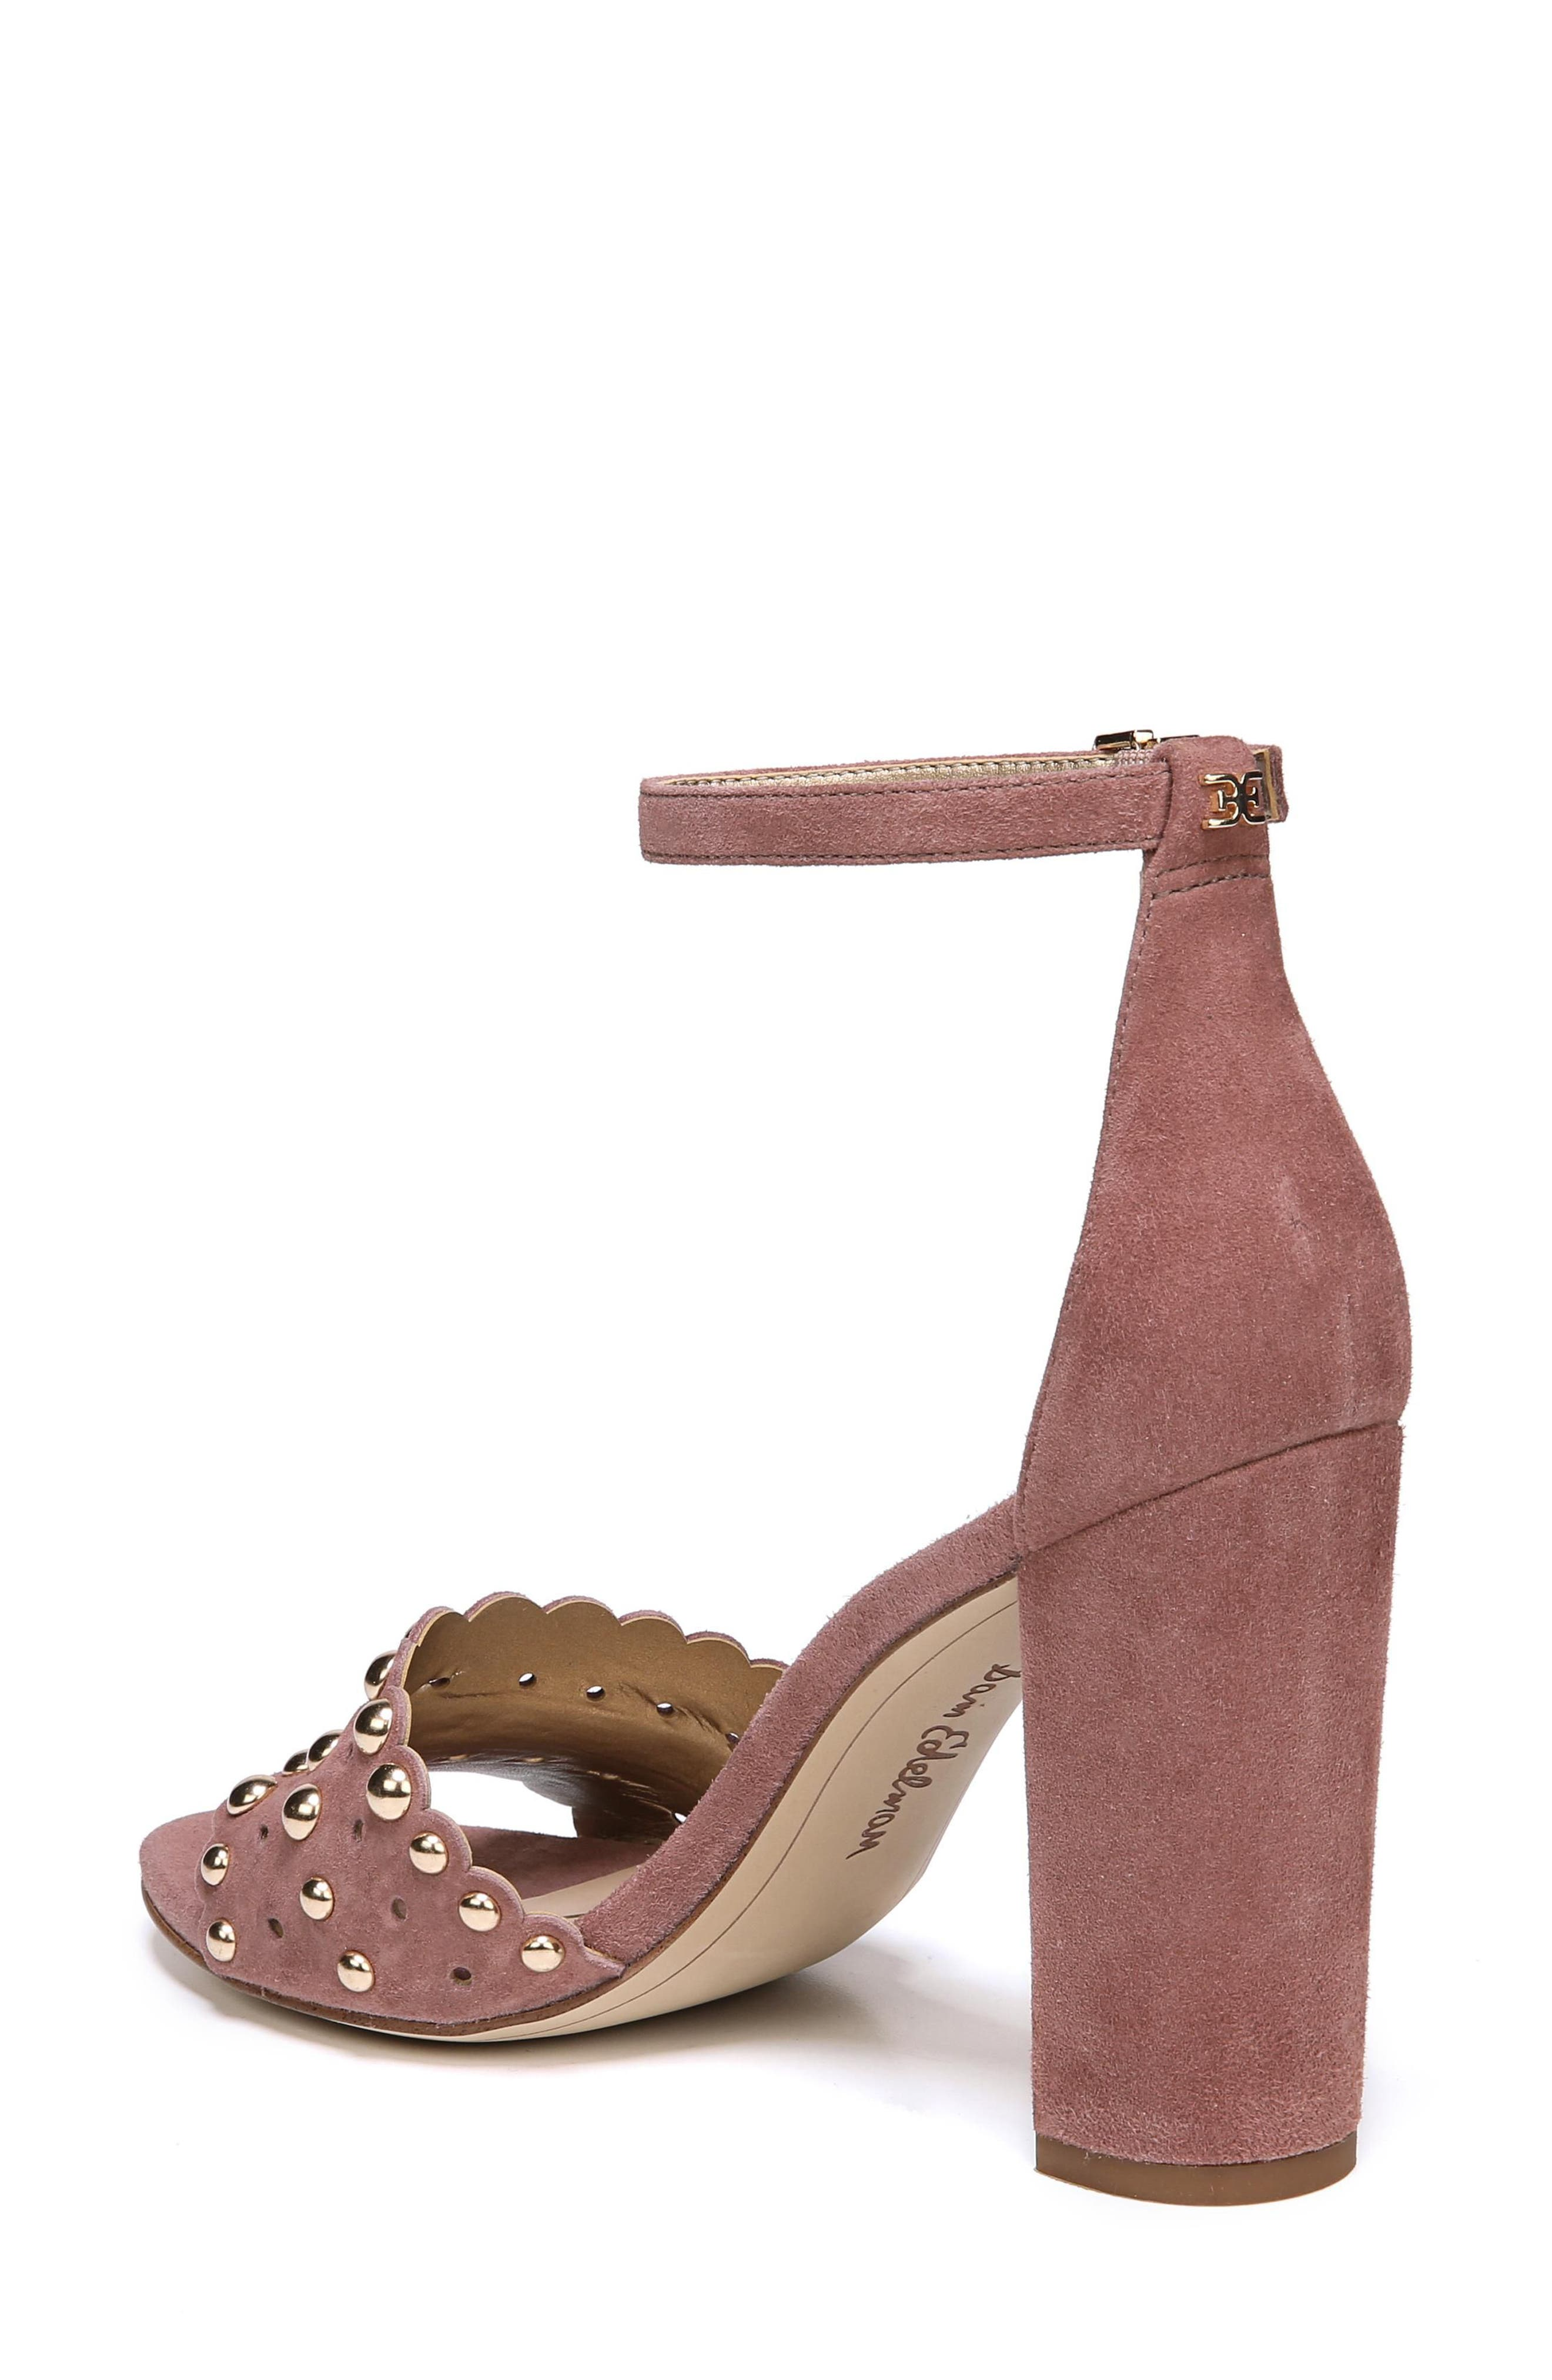 Yaria Studded Block Heel Sandal,                             Alternate thumbnail 2, color,                             Dusty Rose Suede